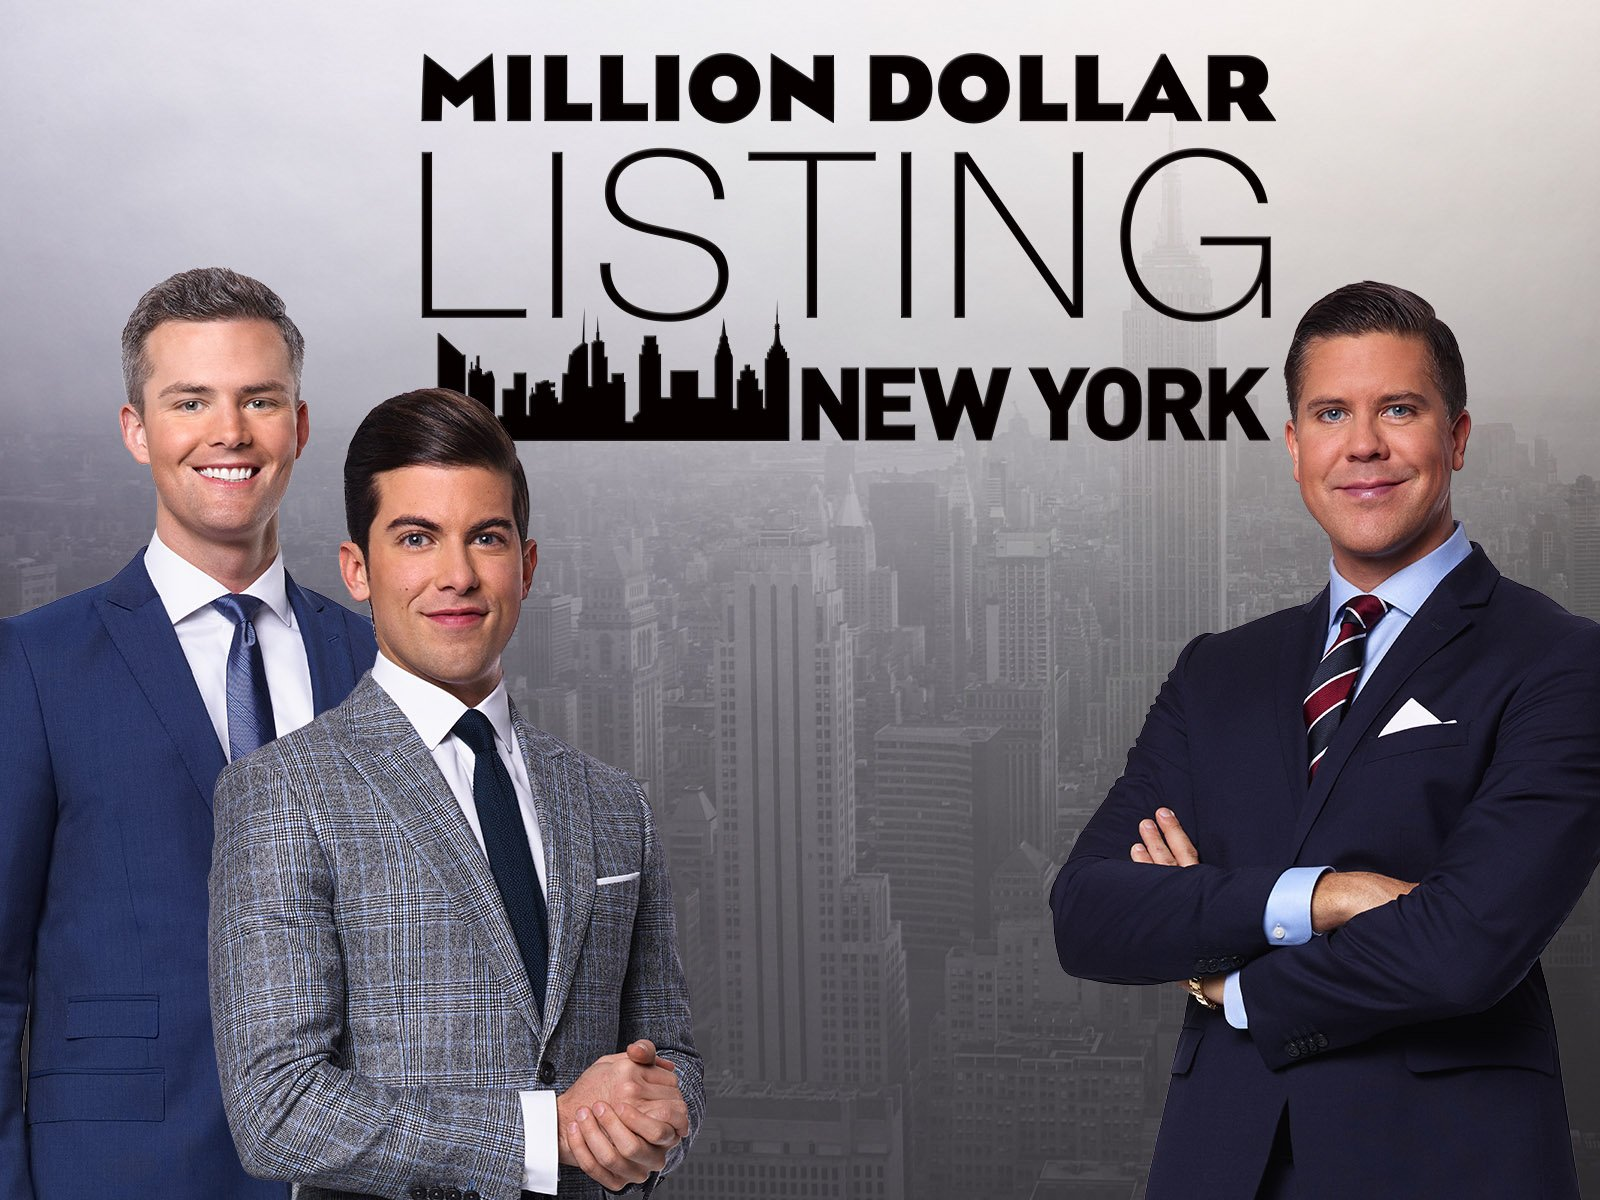 Amazon million dollar listing ny season 3 fredrik eklund amazon million dollar listing ny season 3 fredrik eklund luis d ortiz ryan serhant amazon digital services llc colourmoves Gallery